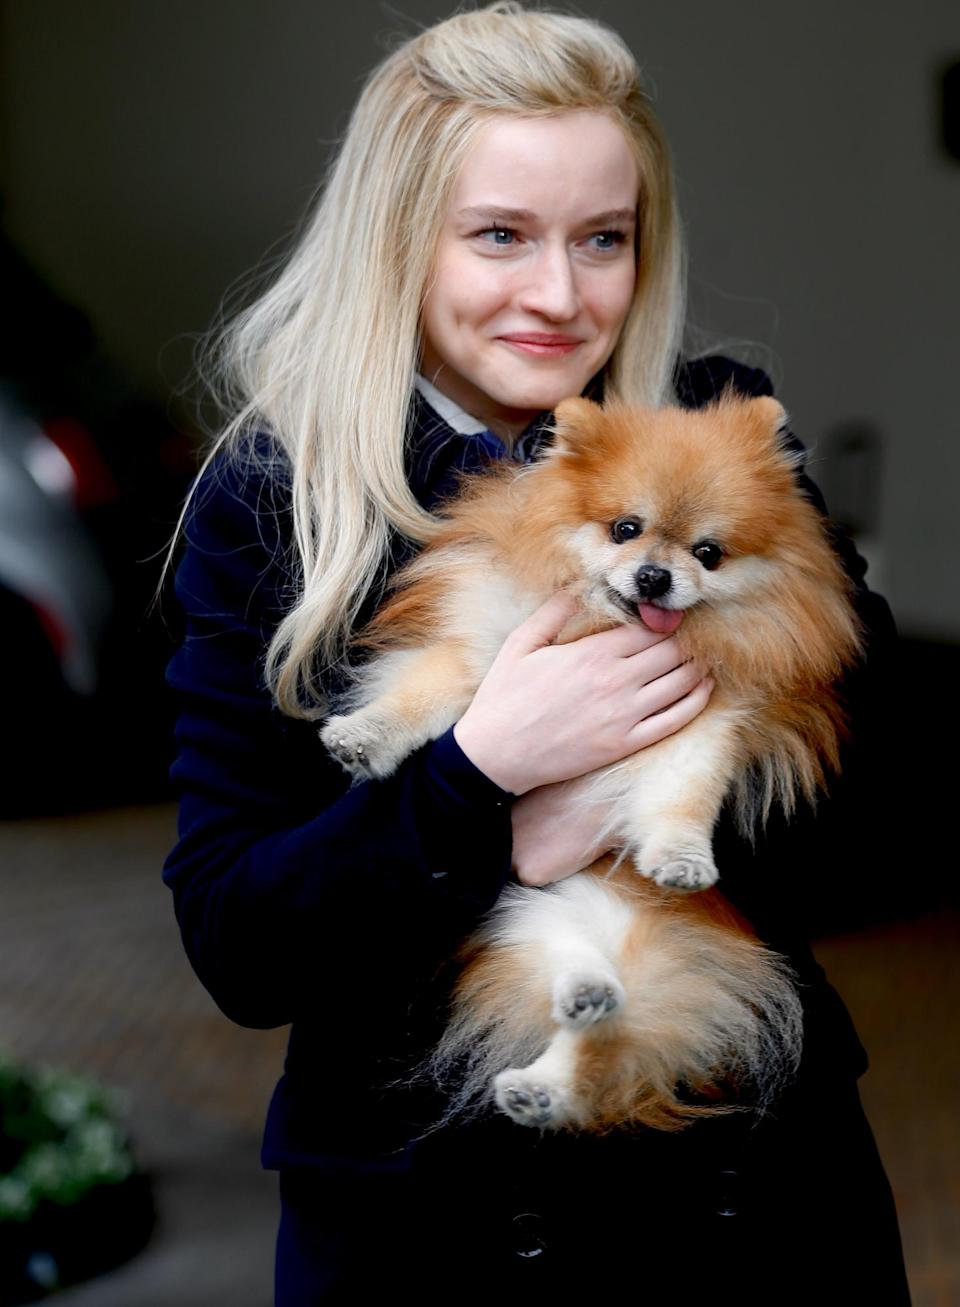 <p>Julia Garner cuddles up to a Pomeranian on the set of upcoming TV miniseries <i>Inventing Anna</i> on Tuesday in N.Y.C. </p>